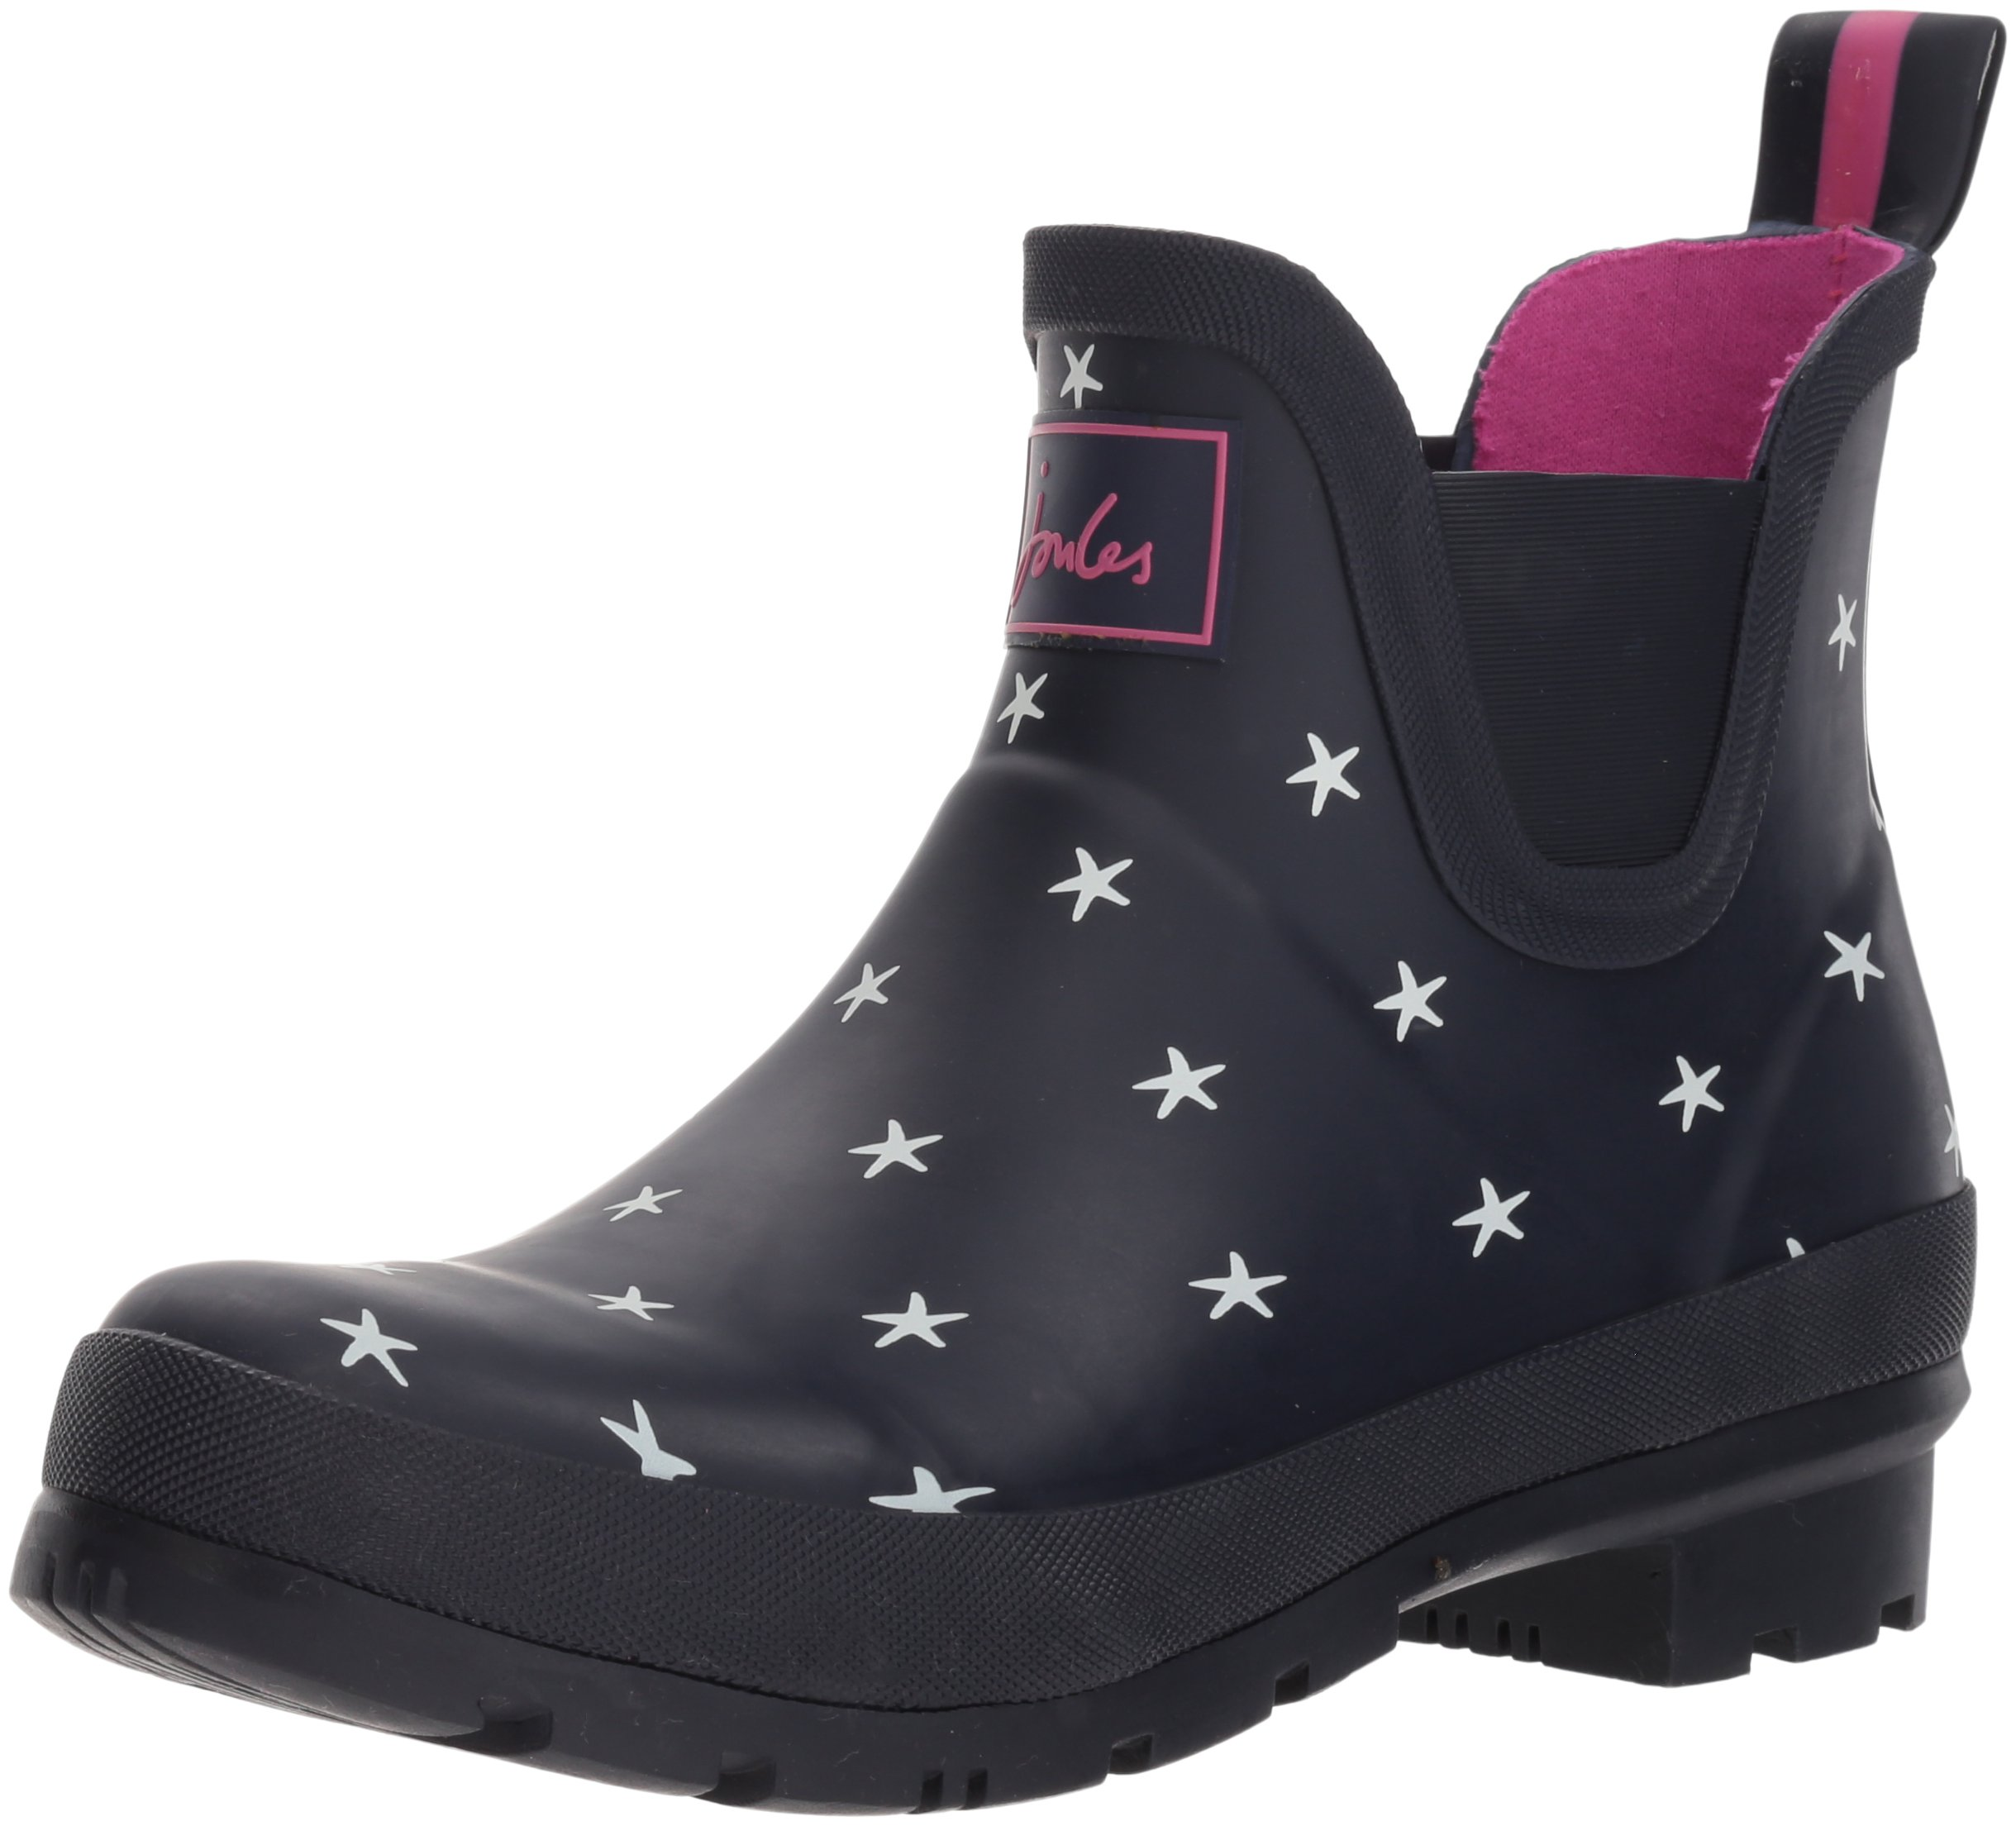 Joules Women's Wellibob Rain Boot, French Navy Star Fish, 9 Medium US by Joules